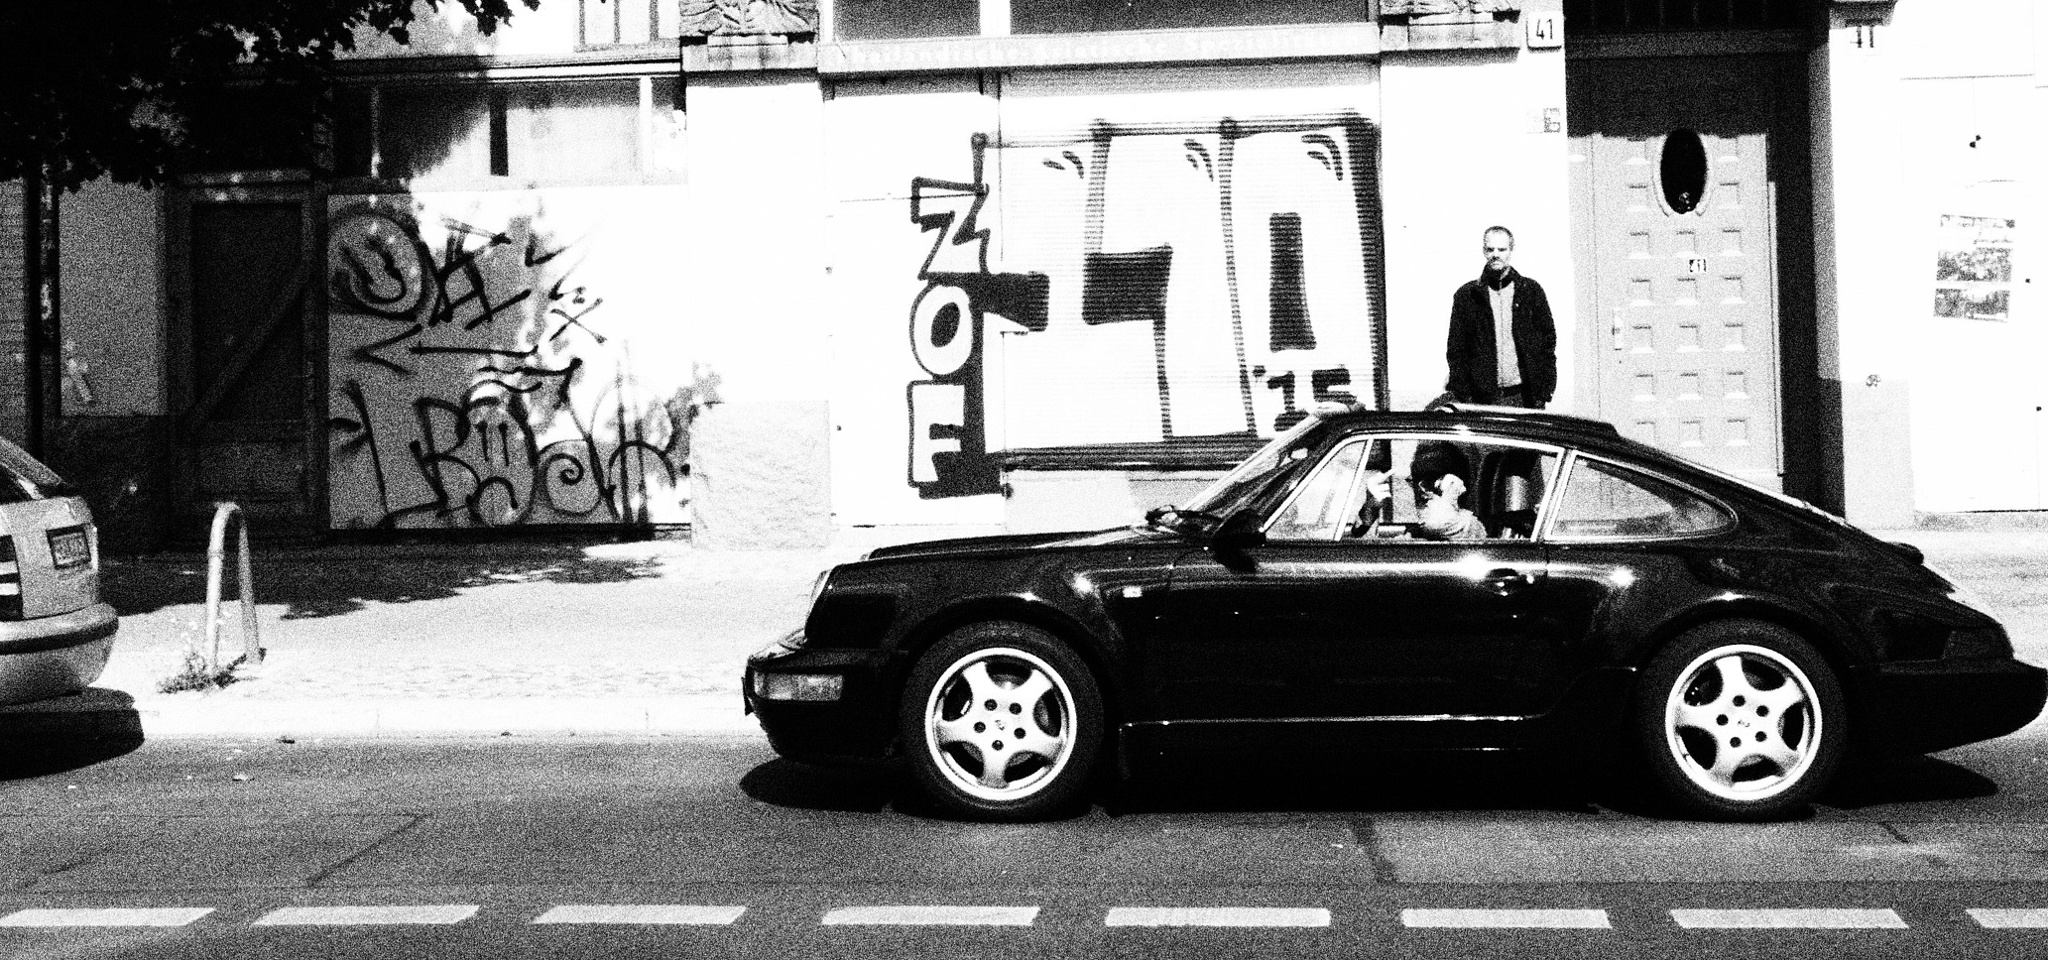 porsche but dont like to take photos of him....who cares by Cit Pelo